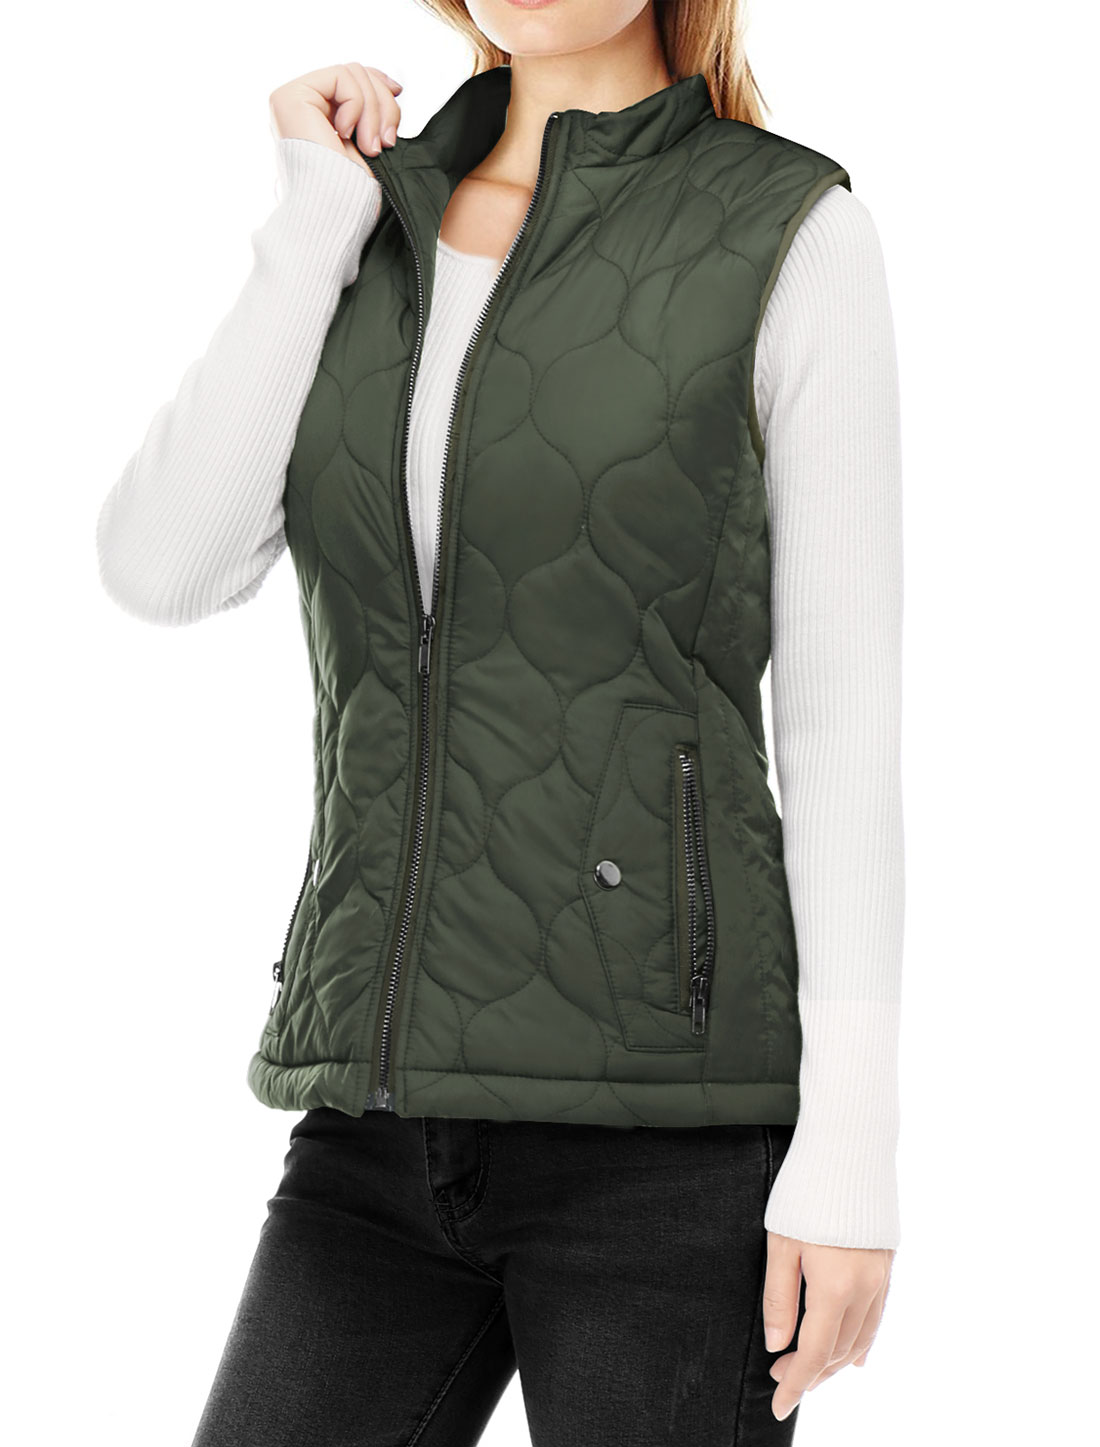 Women Stand Collar Side Pockets Zippered Quilted Padded Vest Green M